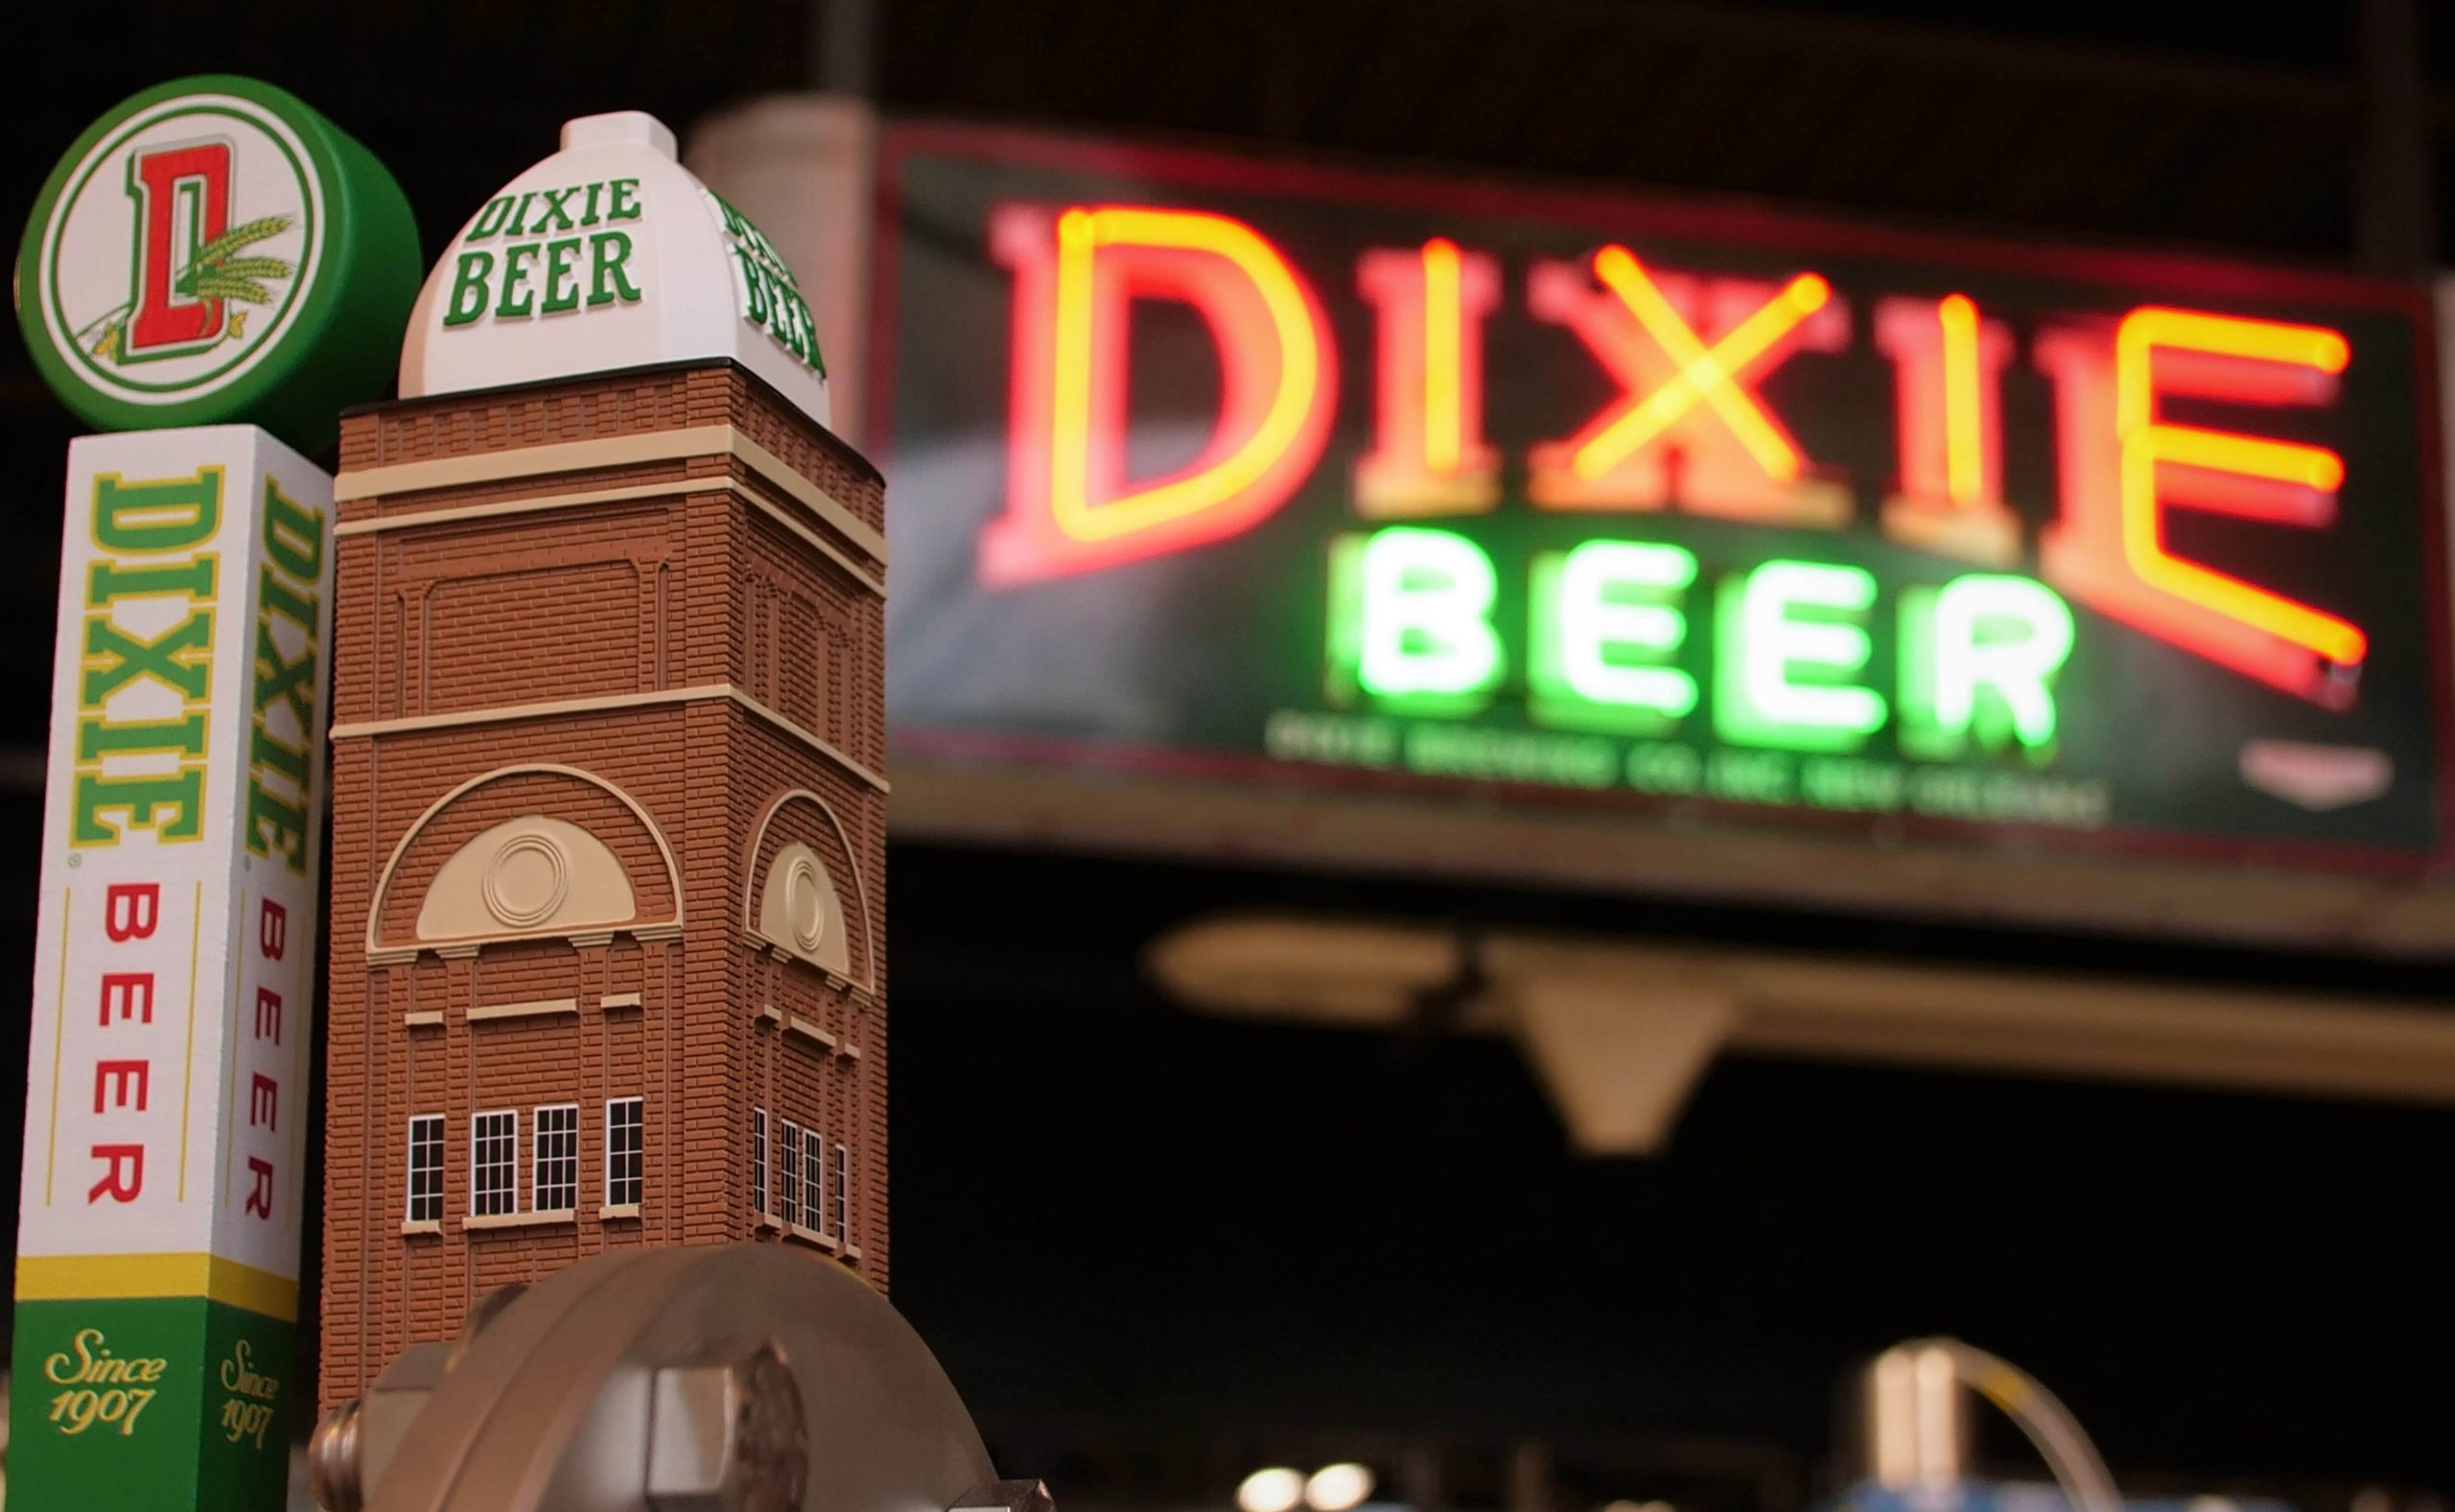 Dixie Brewing Company signage and tap handle